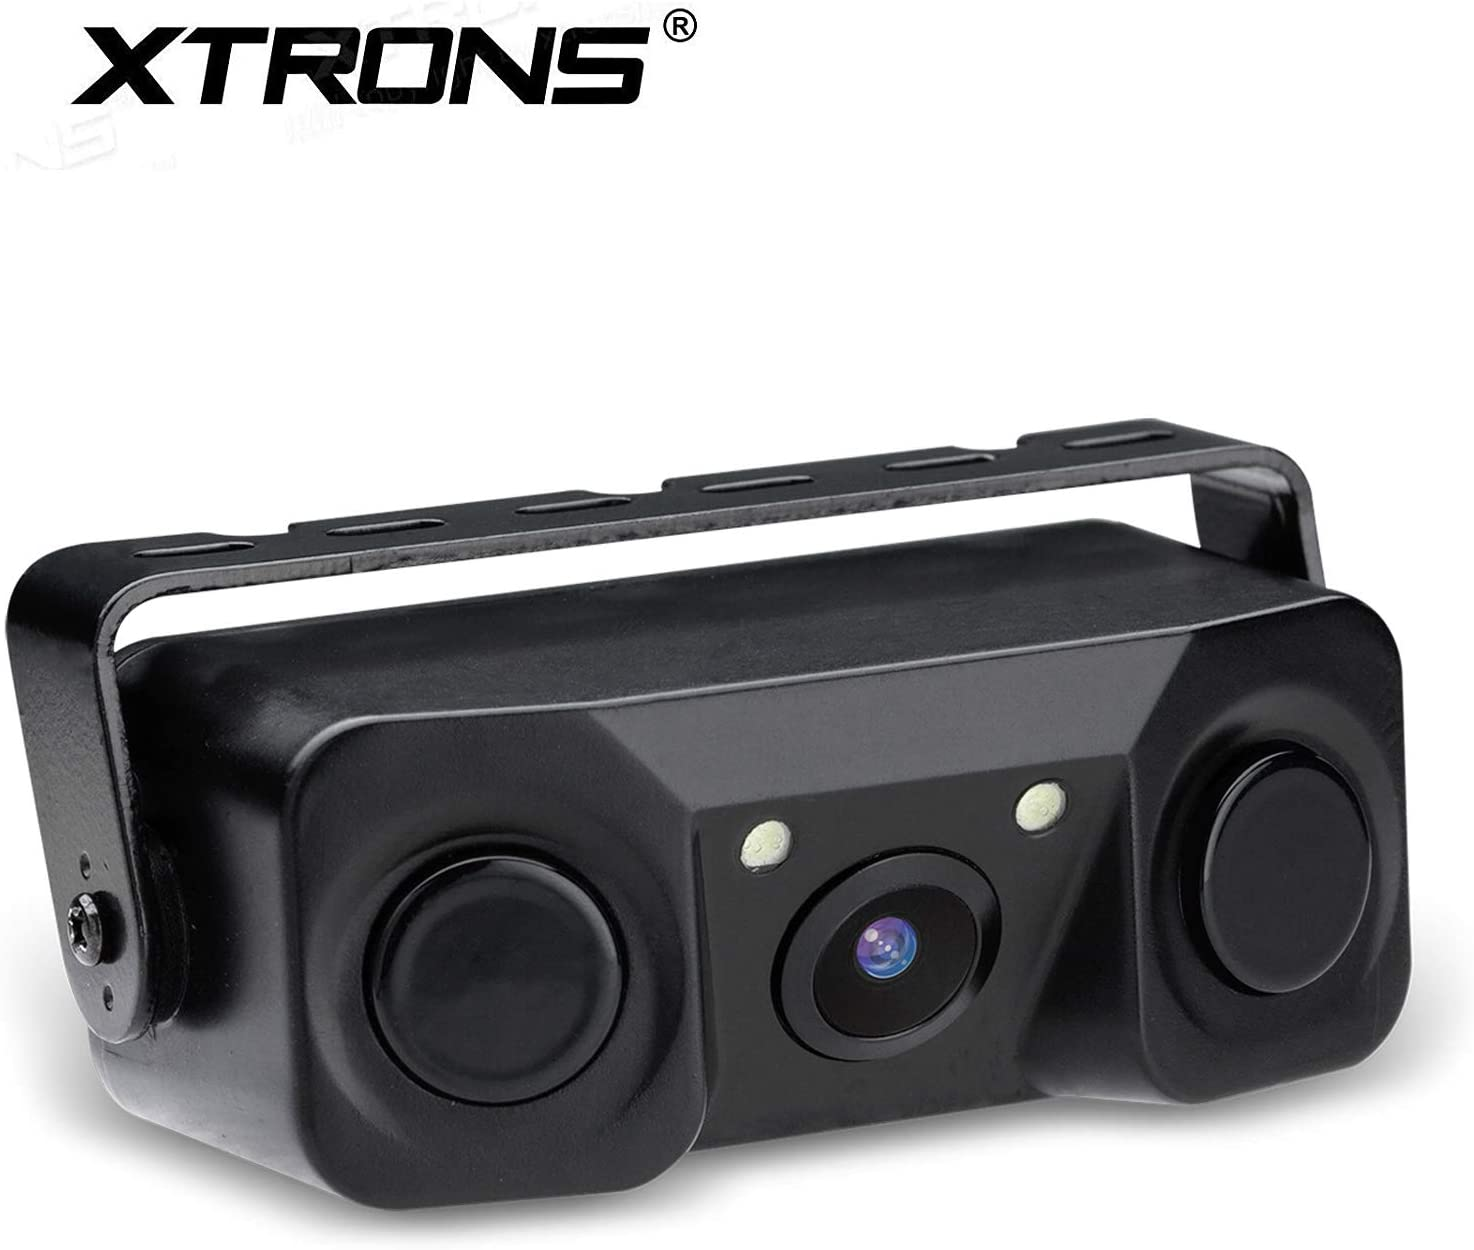 XTRONS 3-in-1 Car Camera with Sensors Wide Angle Reversing Camera with Built-in Parking Sensor Waterproof Parking Aid Radar